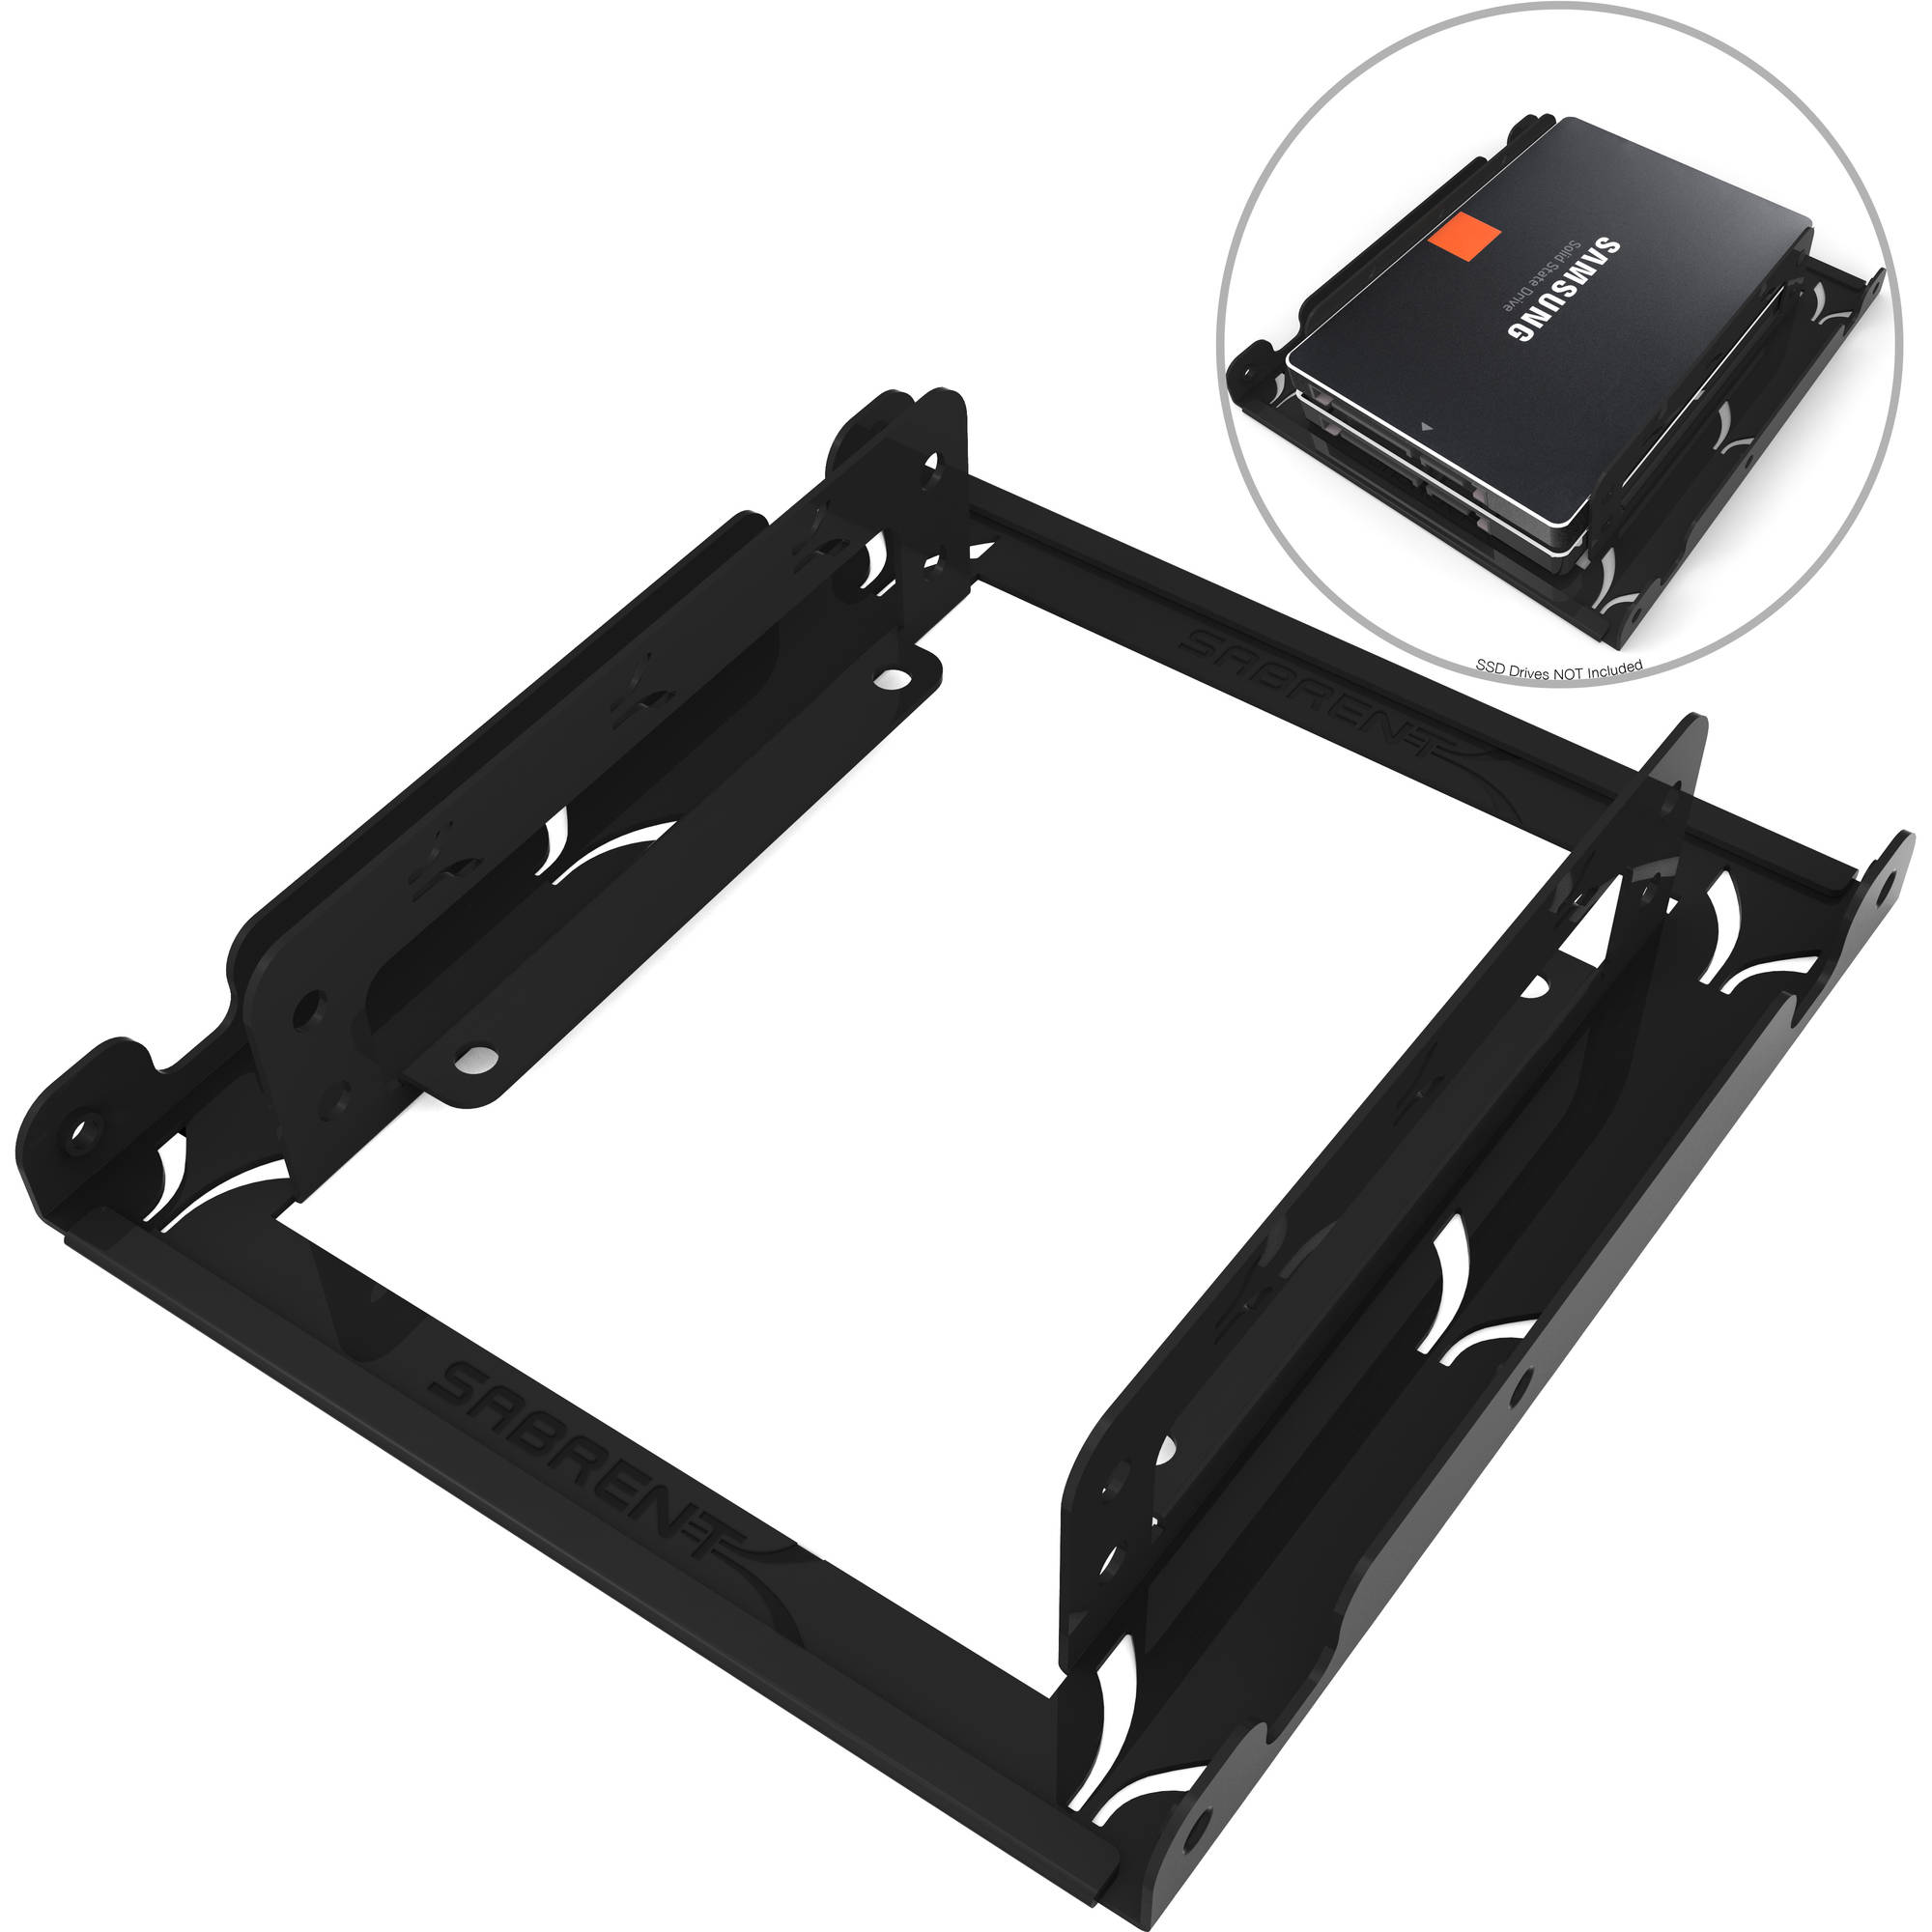 "Sabrent 2.5"" to 3.5"" Internal Hard Disk Drive Mounting Bracket Kit, BK-HDDH - Walmart.com"